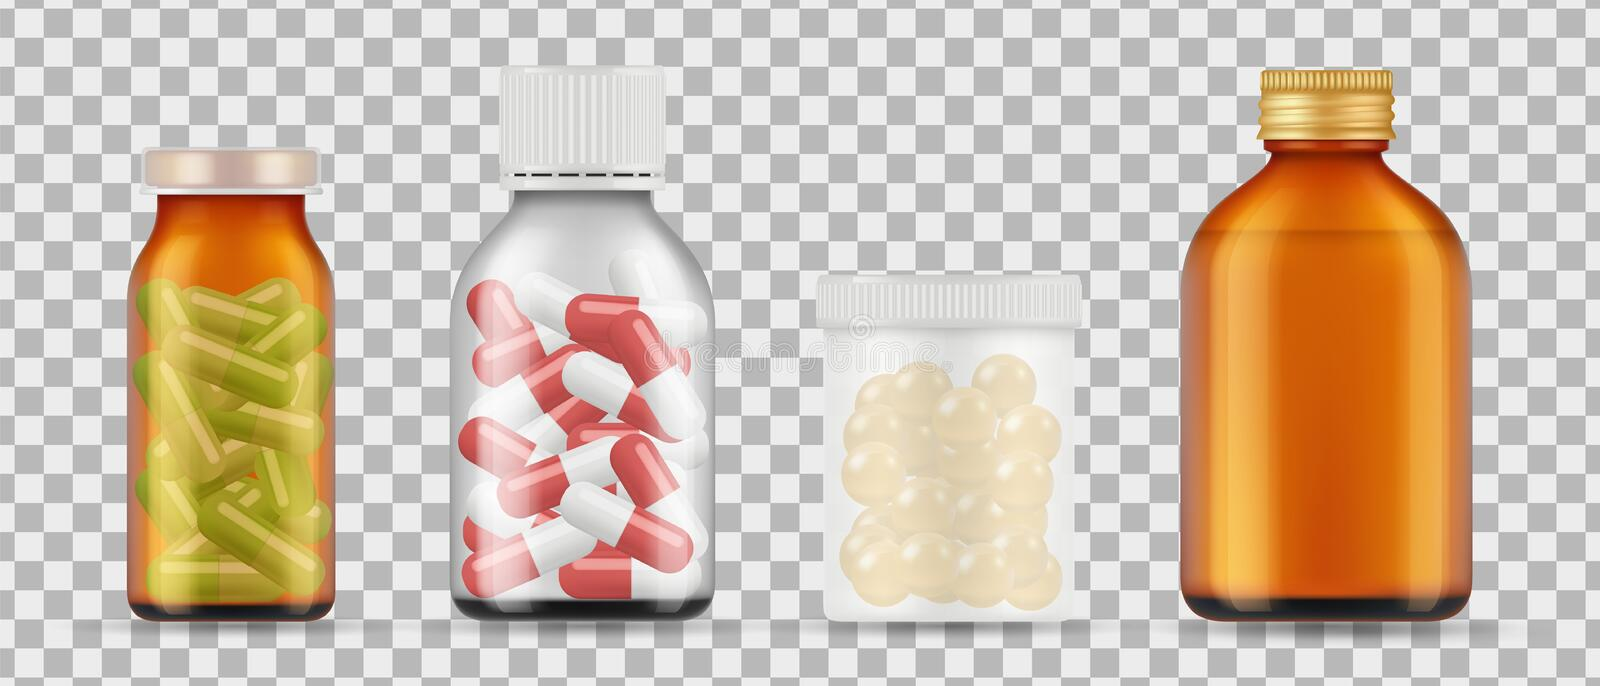 drugs transparent background stock illustrations 649 drugs transparent background stock illustrations vectors clipart dreamstime drugs transparent background stock